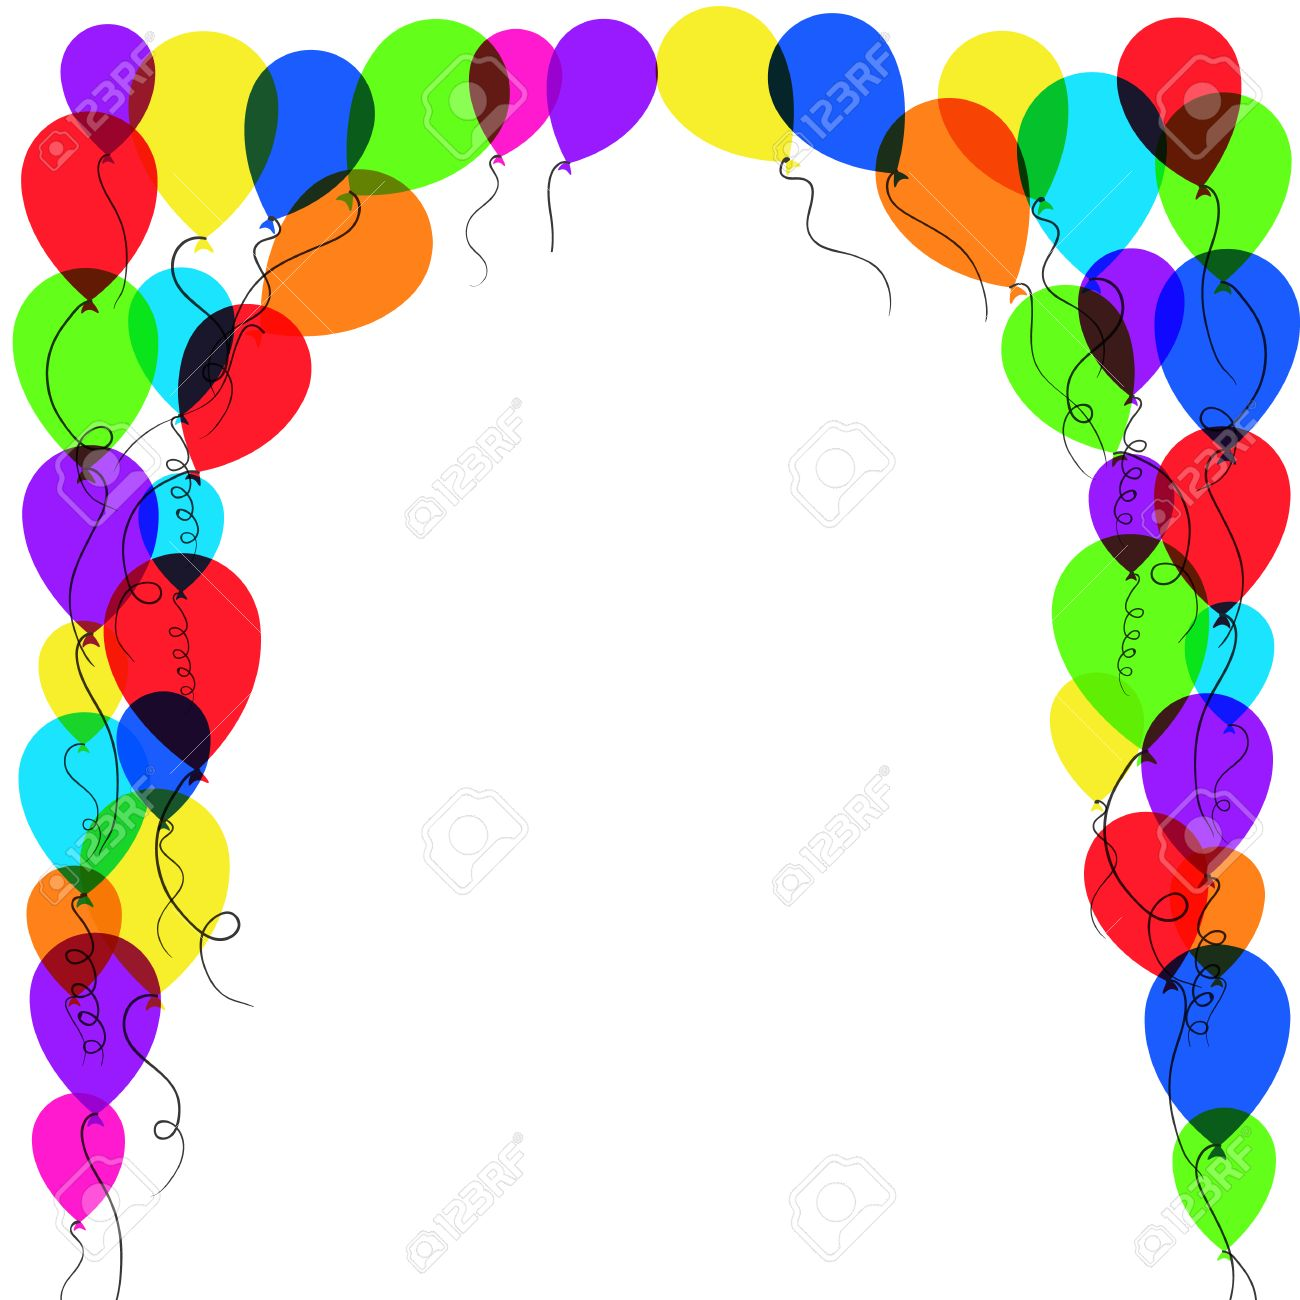 balloon frame holiday background with balloon frame vector illustration